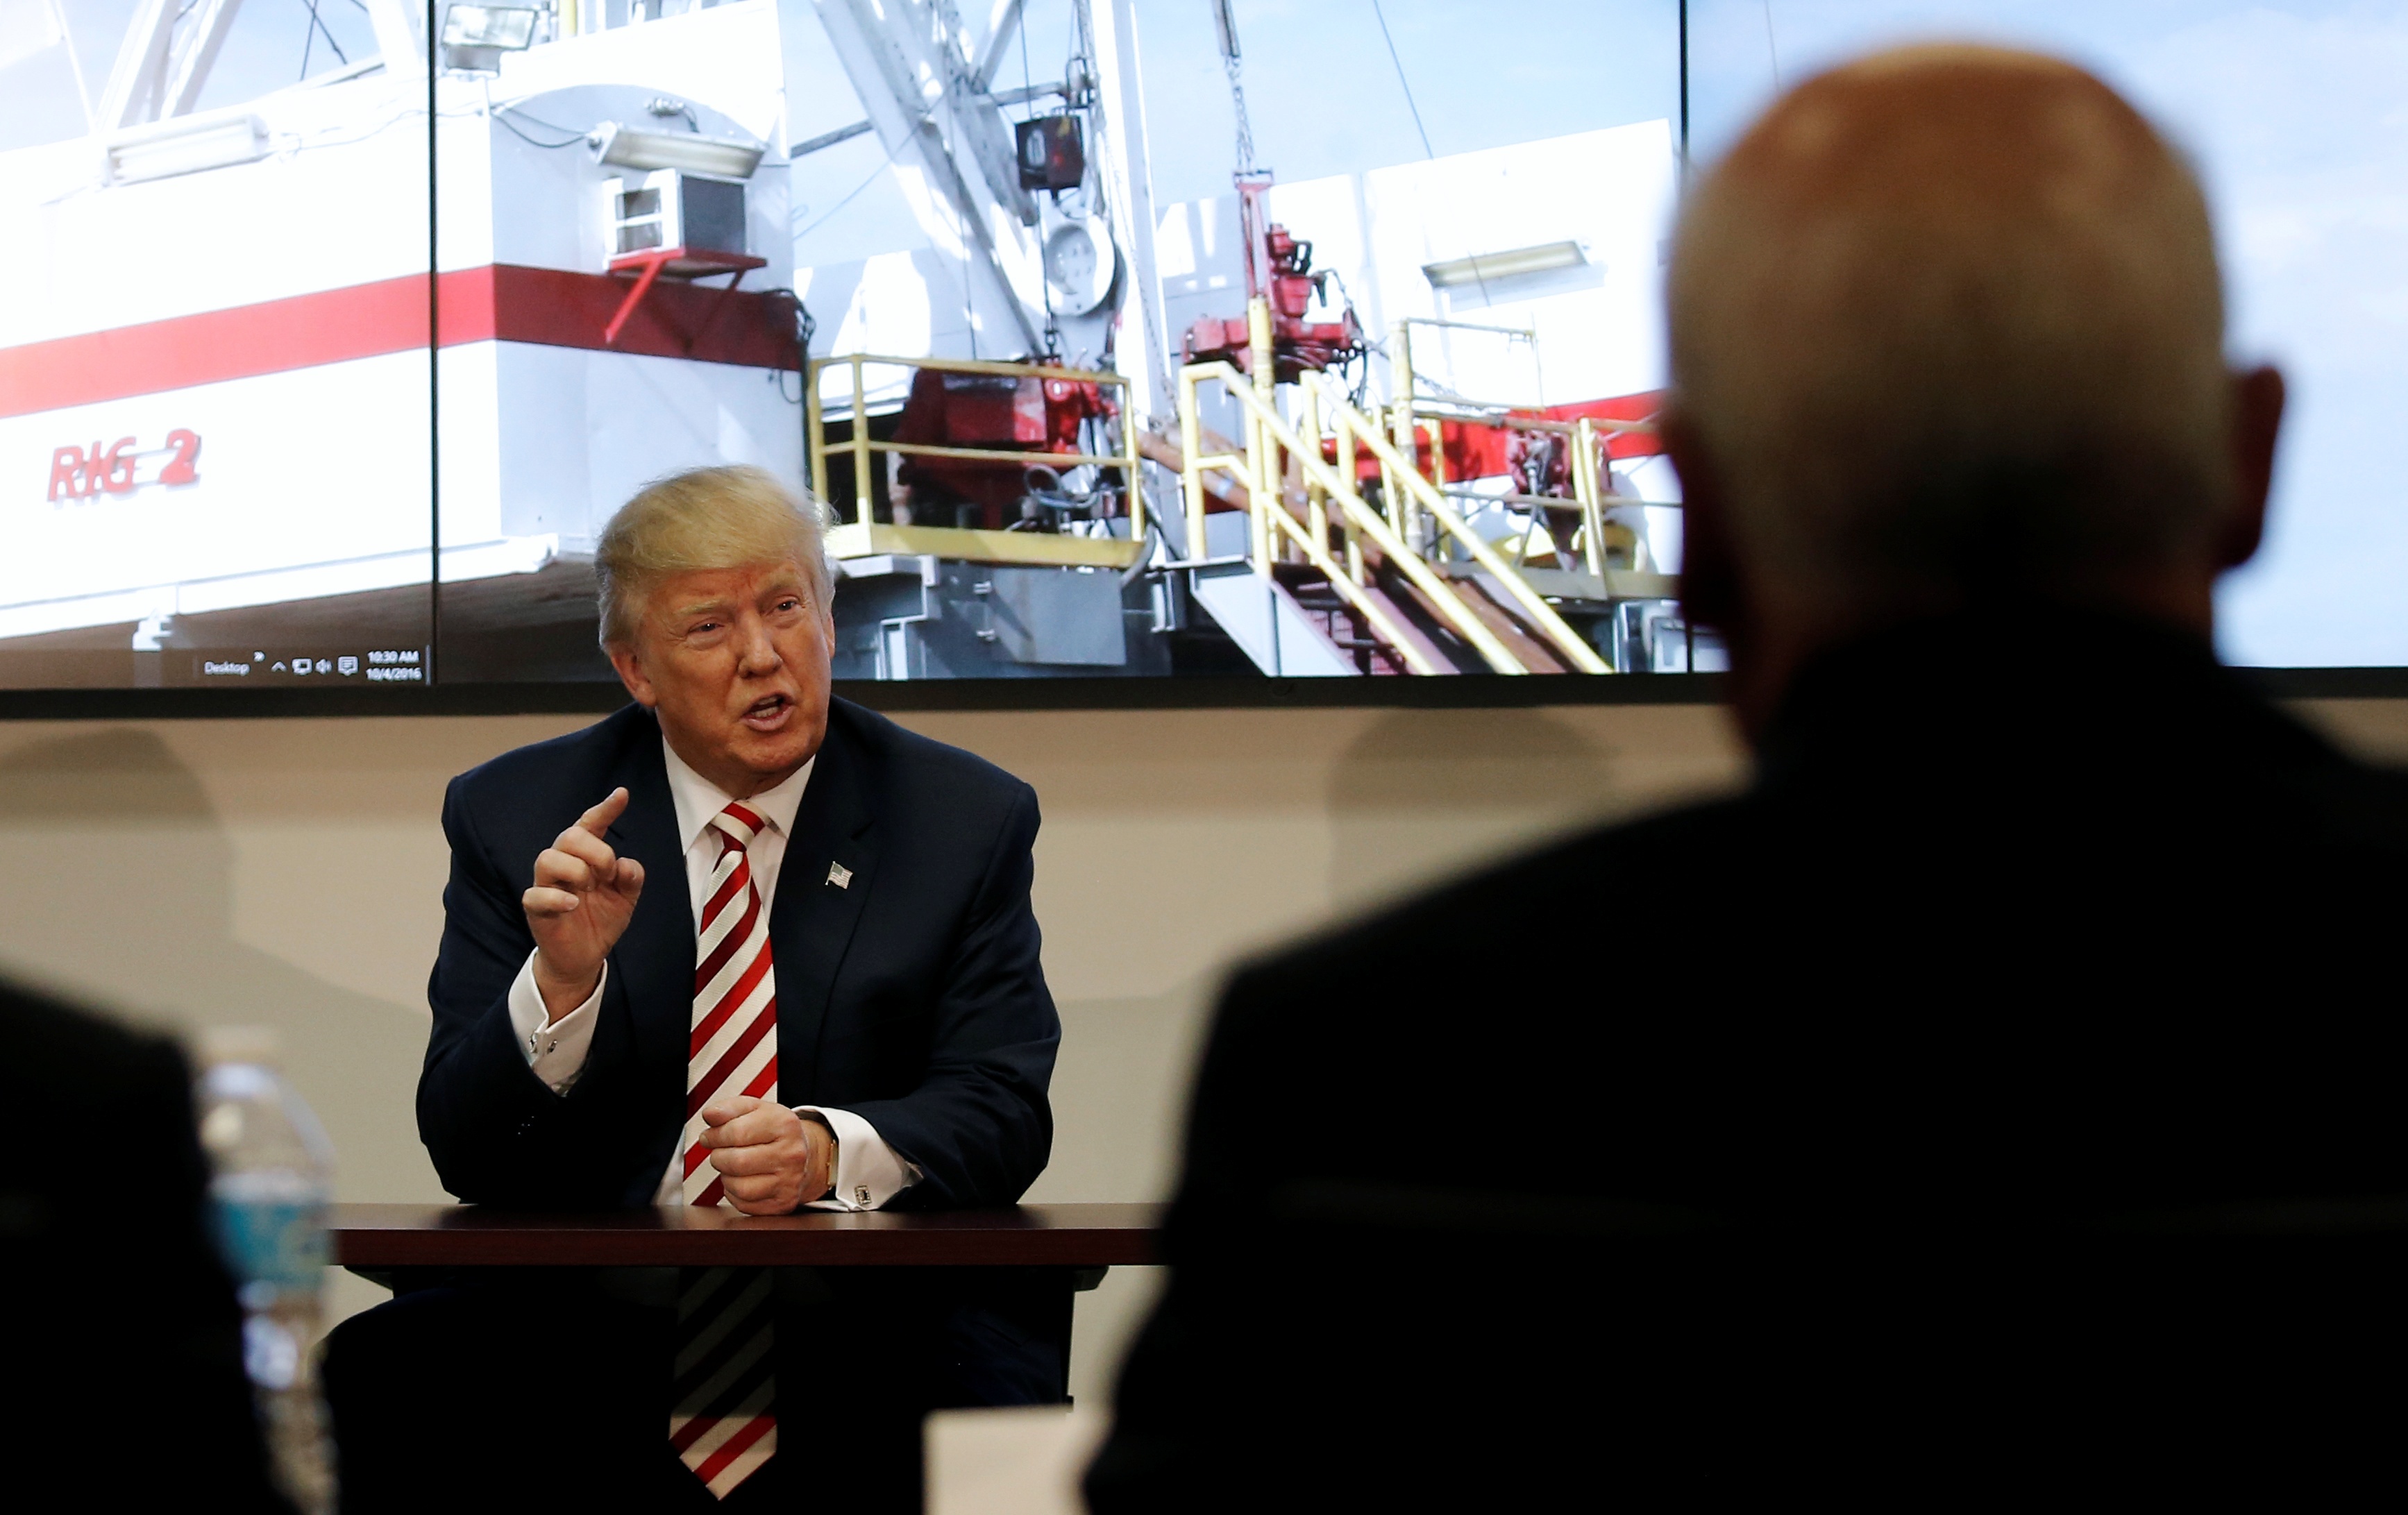 U.S. Republican presidential nominee Donald Trump meets with energy executives during a campaign stop in Denver, Colorado, Oct. 4, 2016.